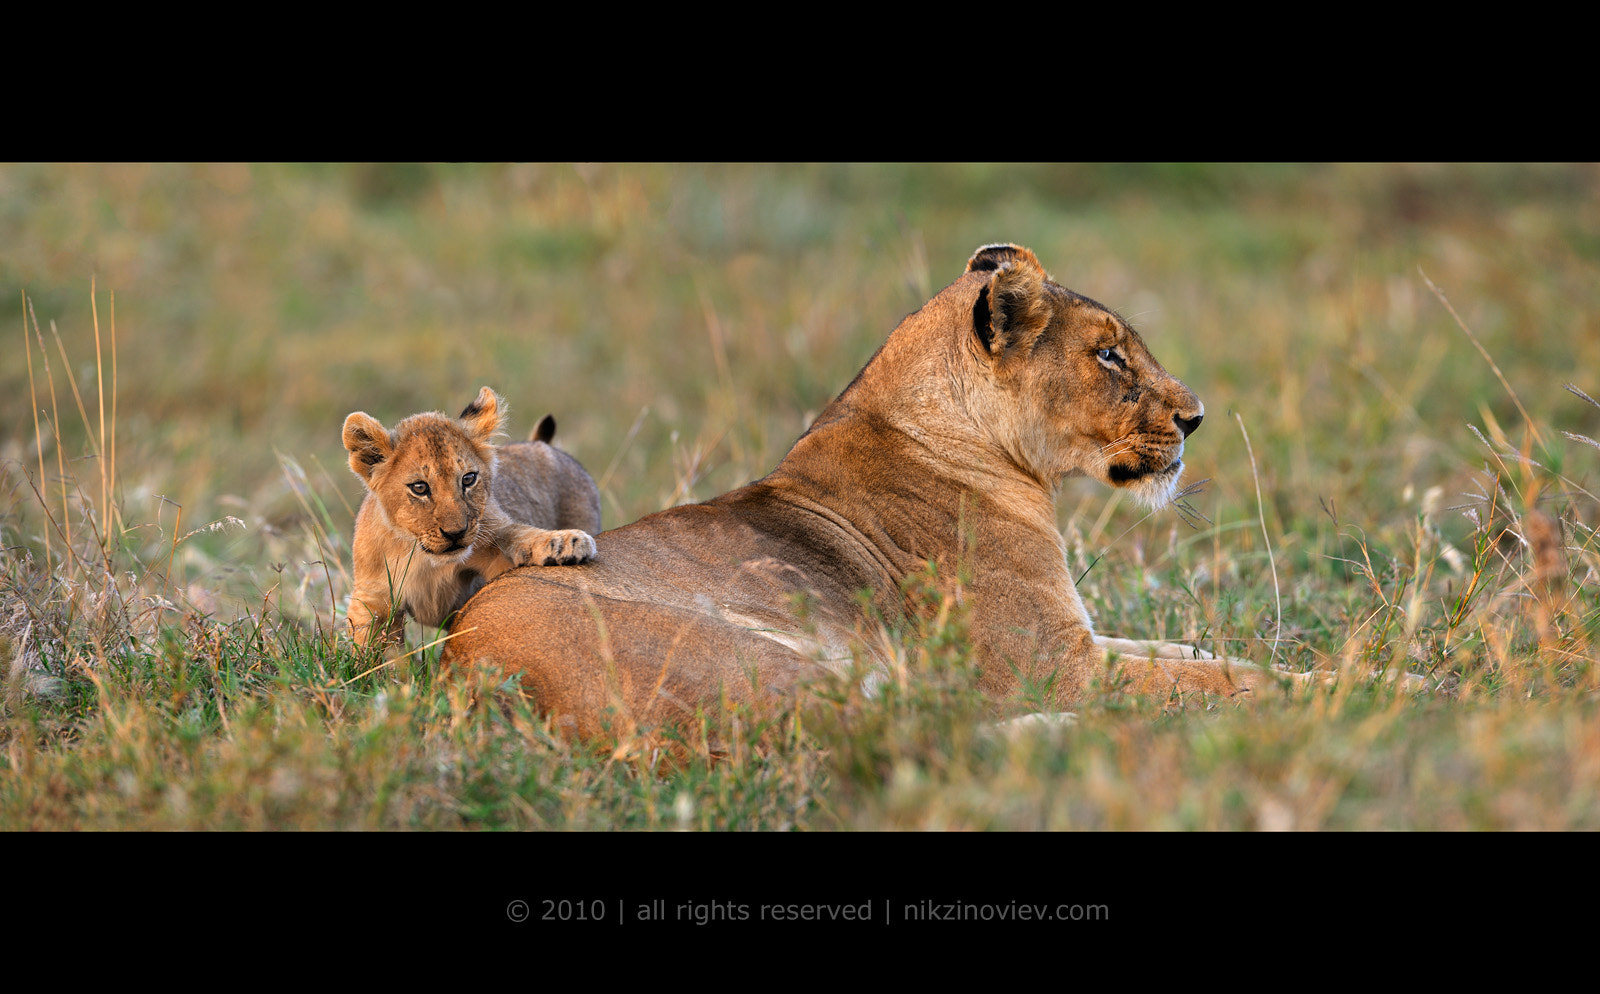 Photograph Isn't it great, when you have someone to lean on! by Nikolai Zinoviev on 500px